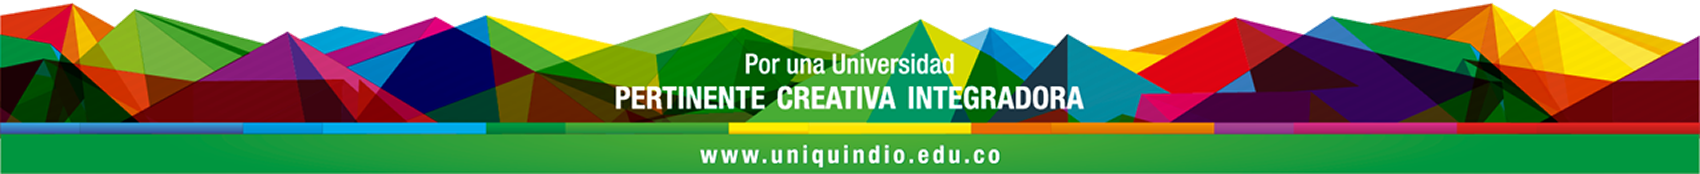 Slogan Universidad del Quindío - Por una Universidad Pertinente Creativa Integradora